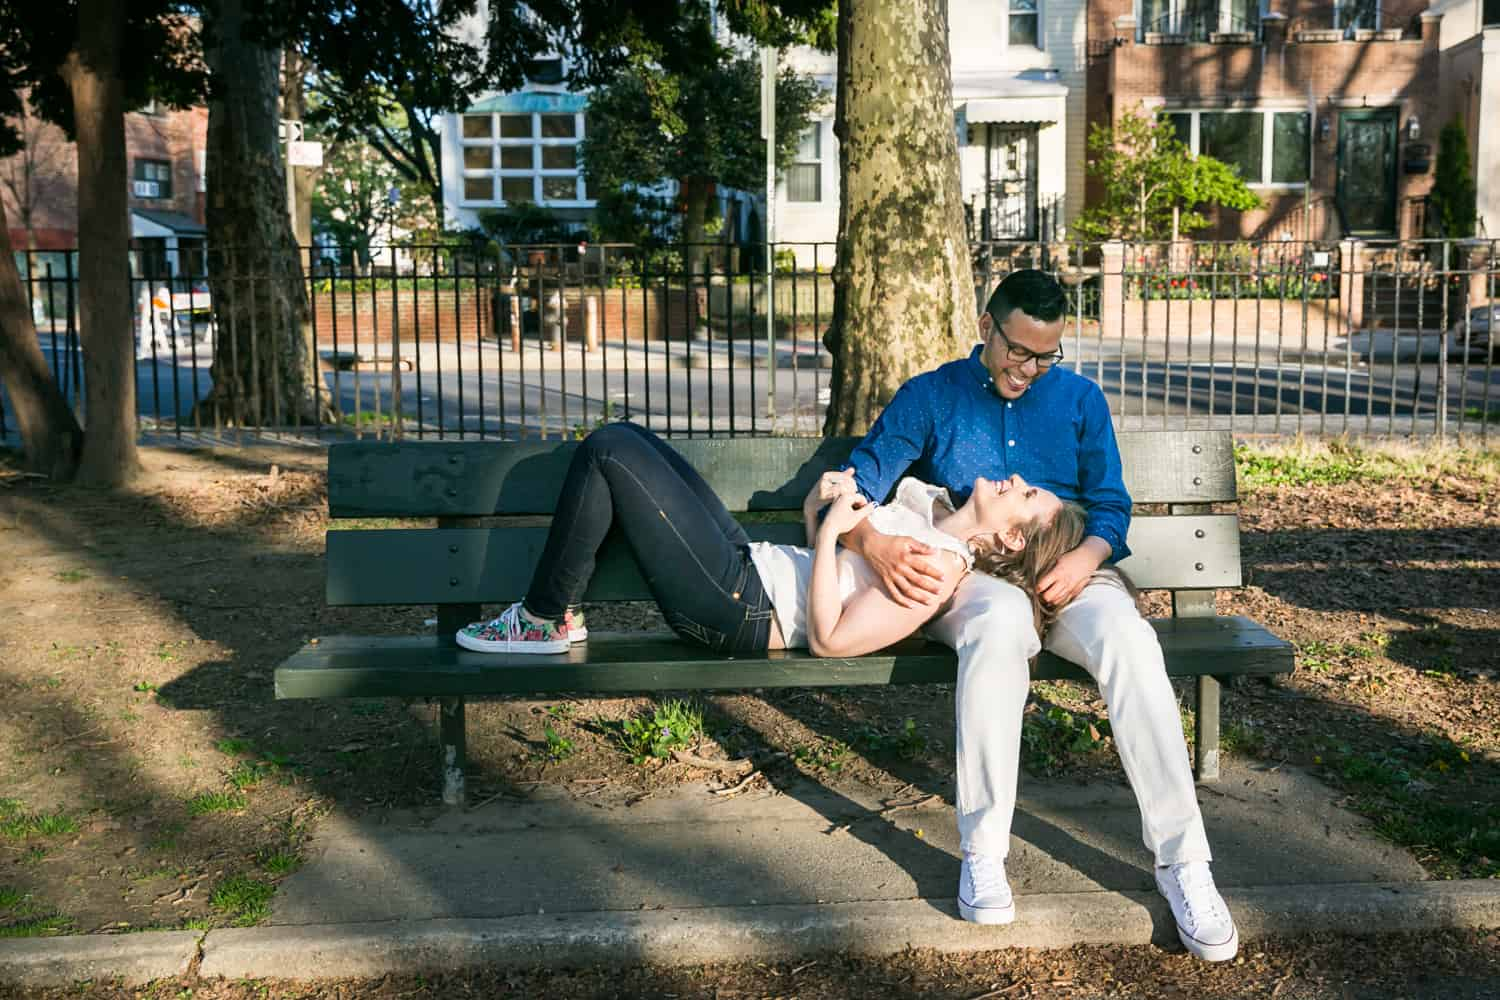 Woman lying in man's lap on bench during an Astoria Park engagement shoot